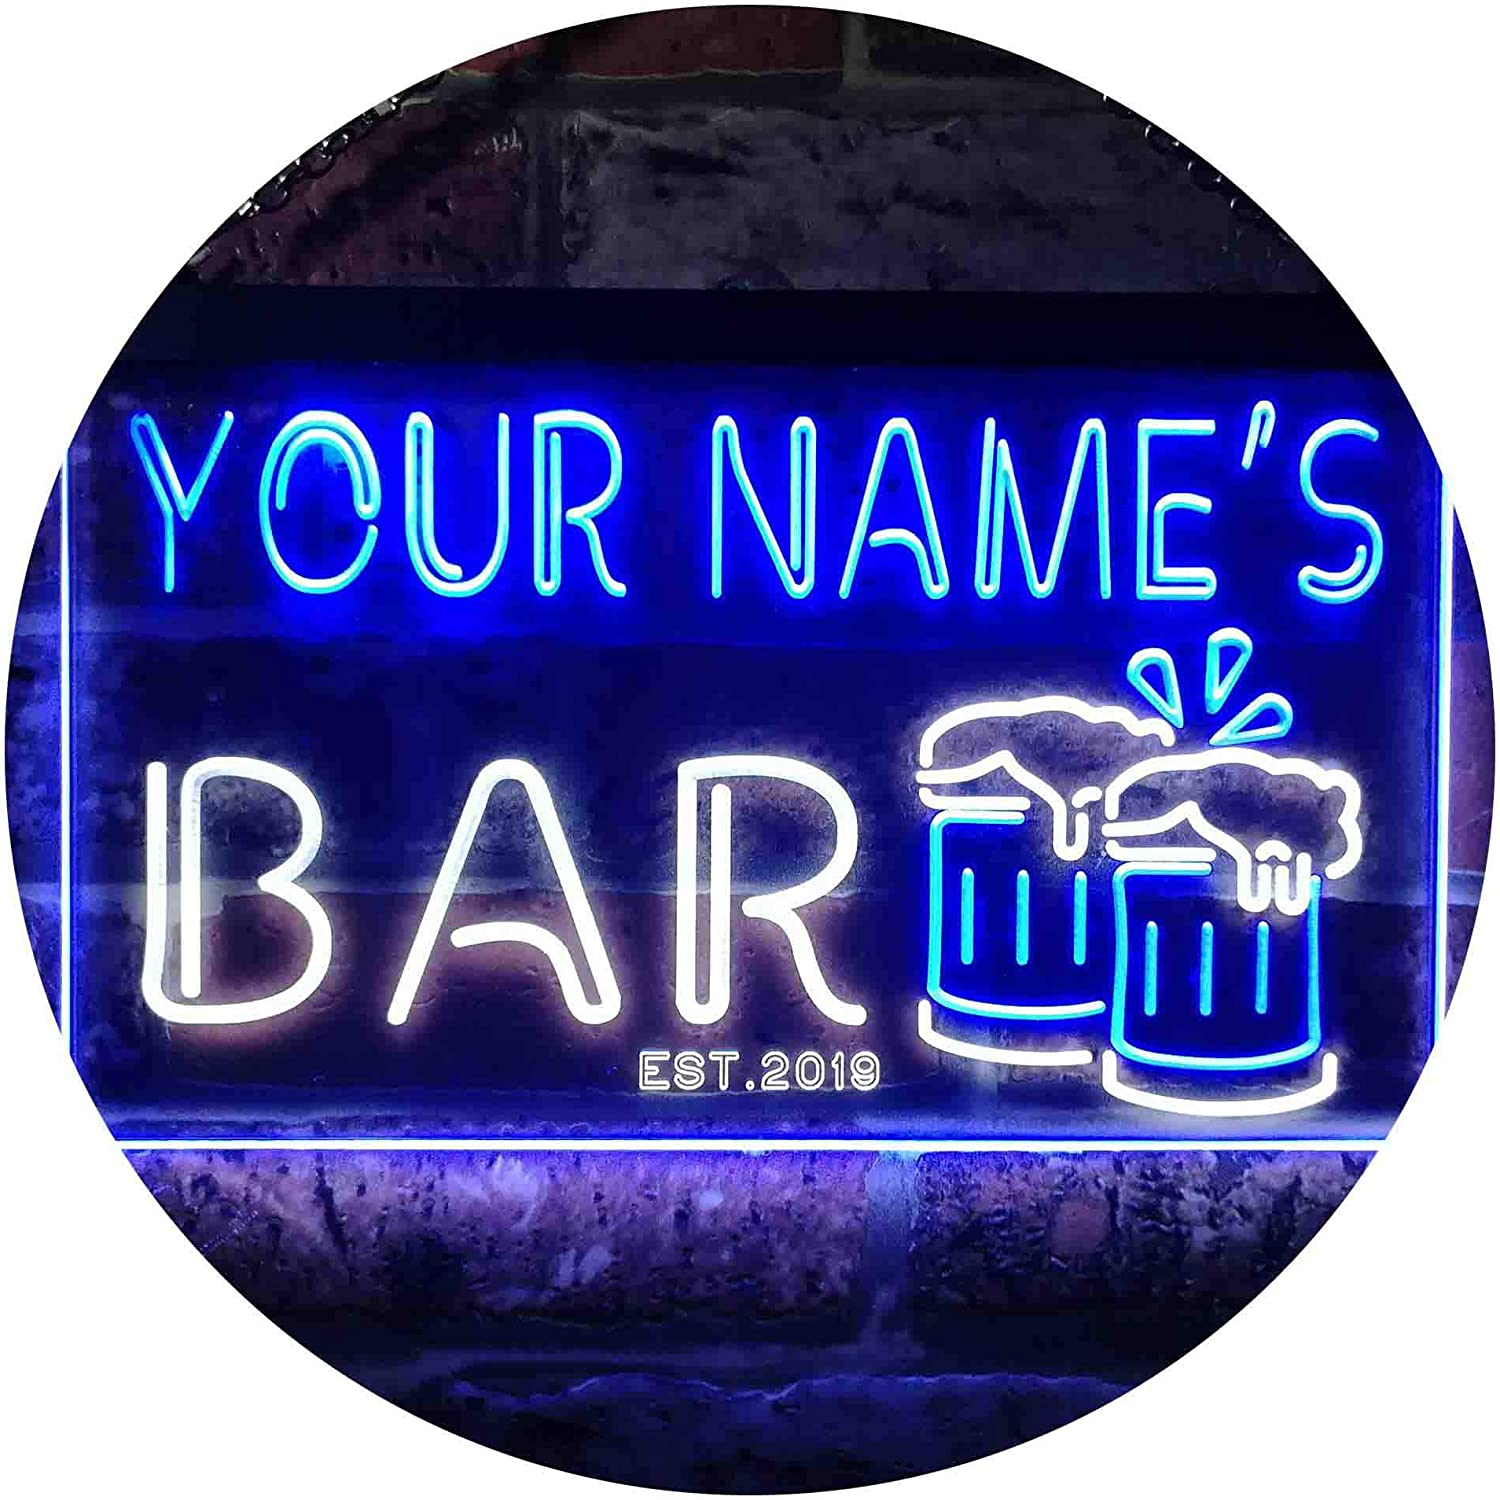 "ADVPRO Personalized Your Name Est Year Theme Bar Beer Mug Decoration Dual Color LED Neon Sign White & Blue 16"" x 12"" st6s43-w1-tm-wb"